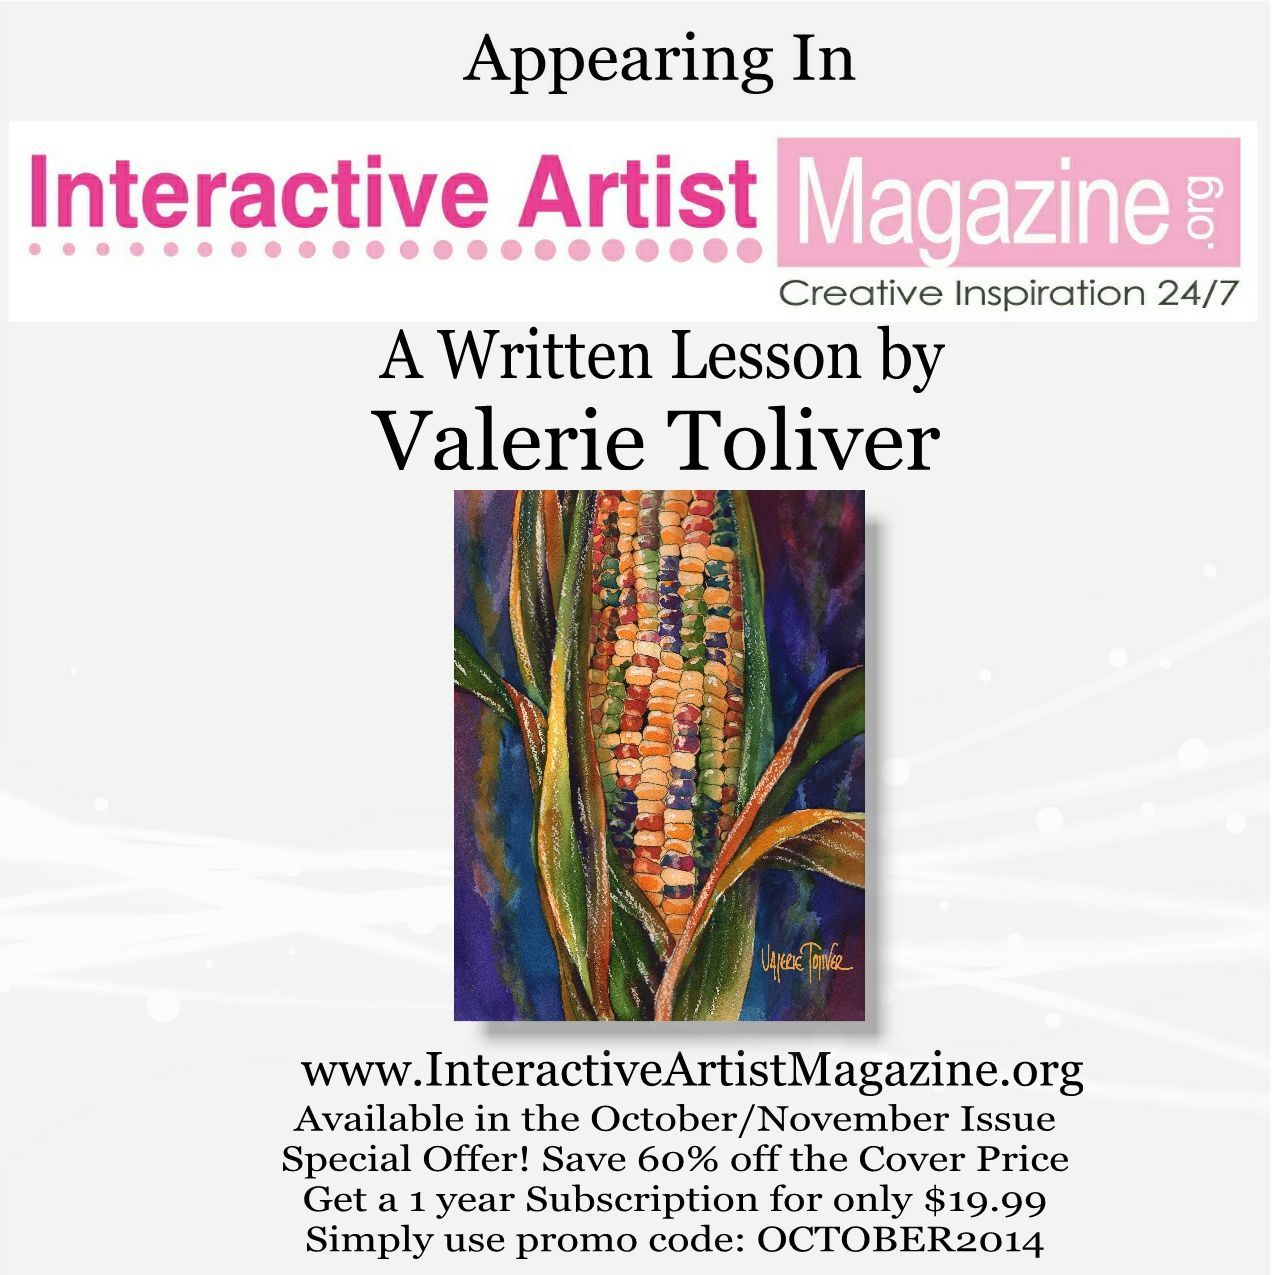 Creative Inspiration 24/7  Online Artist Magazine www.InteractiveArtistMagazine.org Video Lesson, Written Lessons, Informative Articles, Product Reviews and so much more!